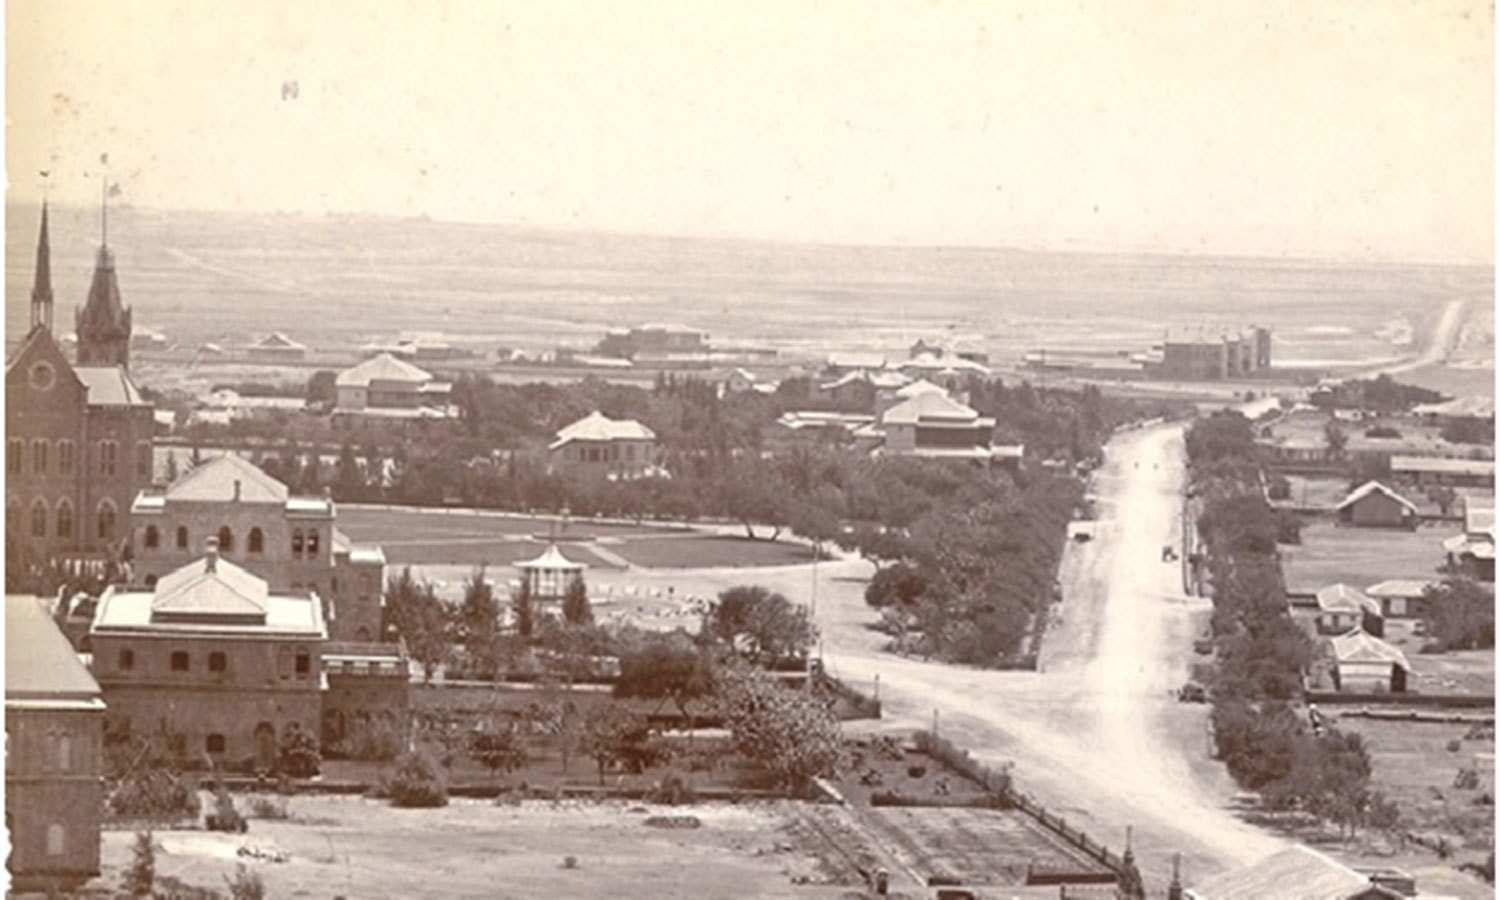 Frere Road in 1902. It leads to Clifton which (as can be seen in the horizon) was largely barren. In the 1930s, a bridge (Clifton Bridge) was built to connect the city centre with Clifton.